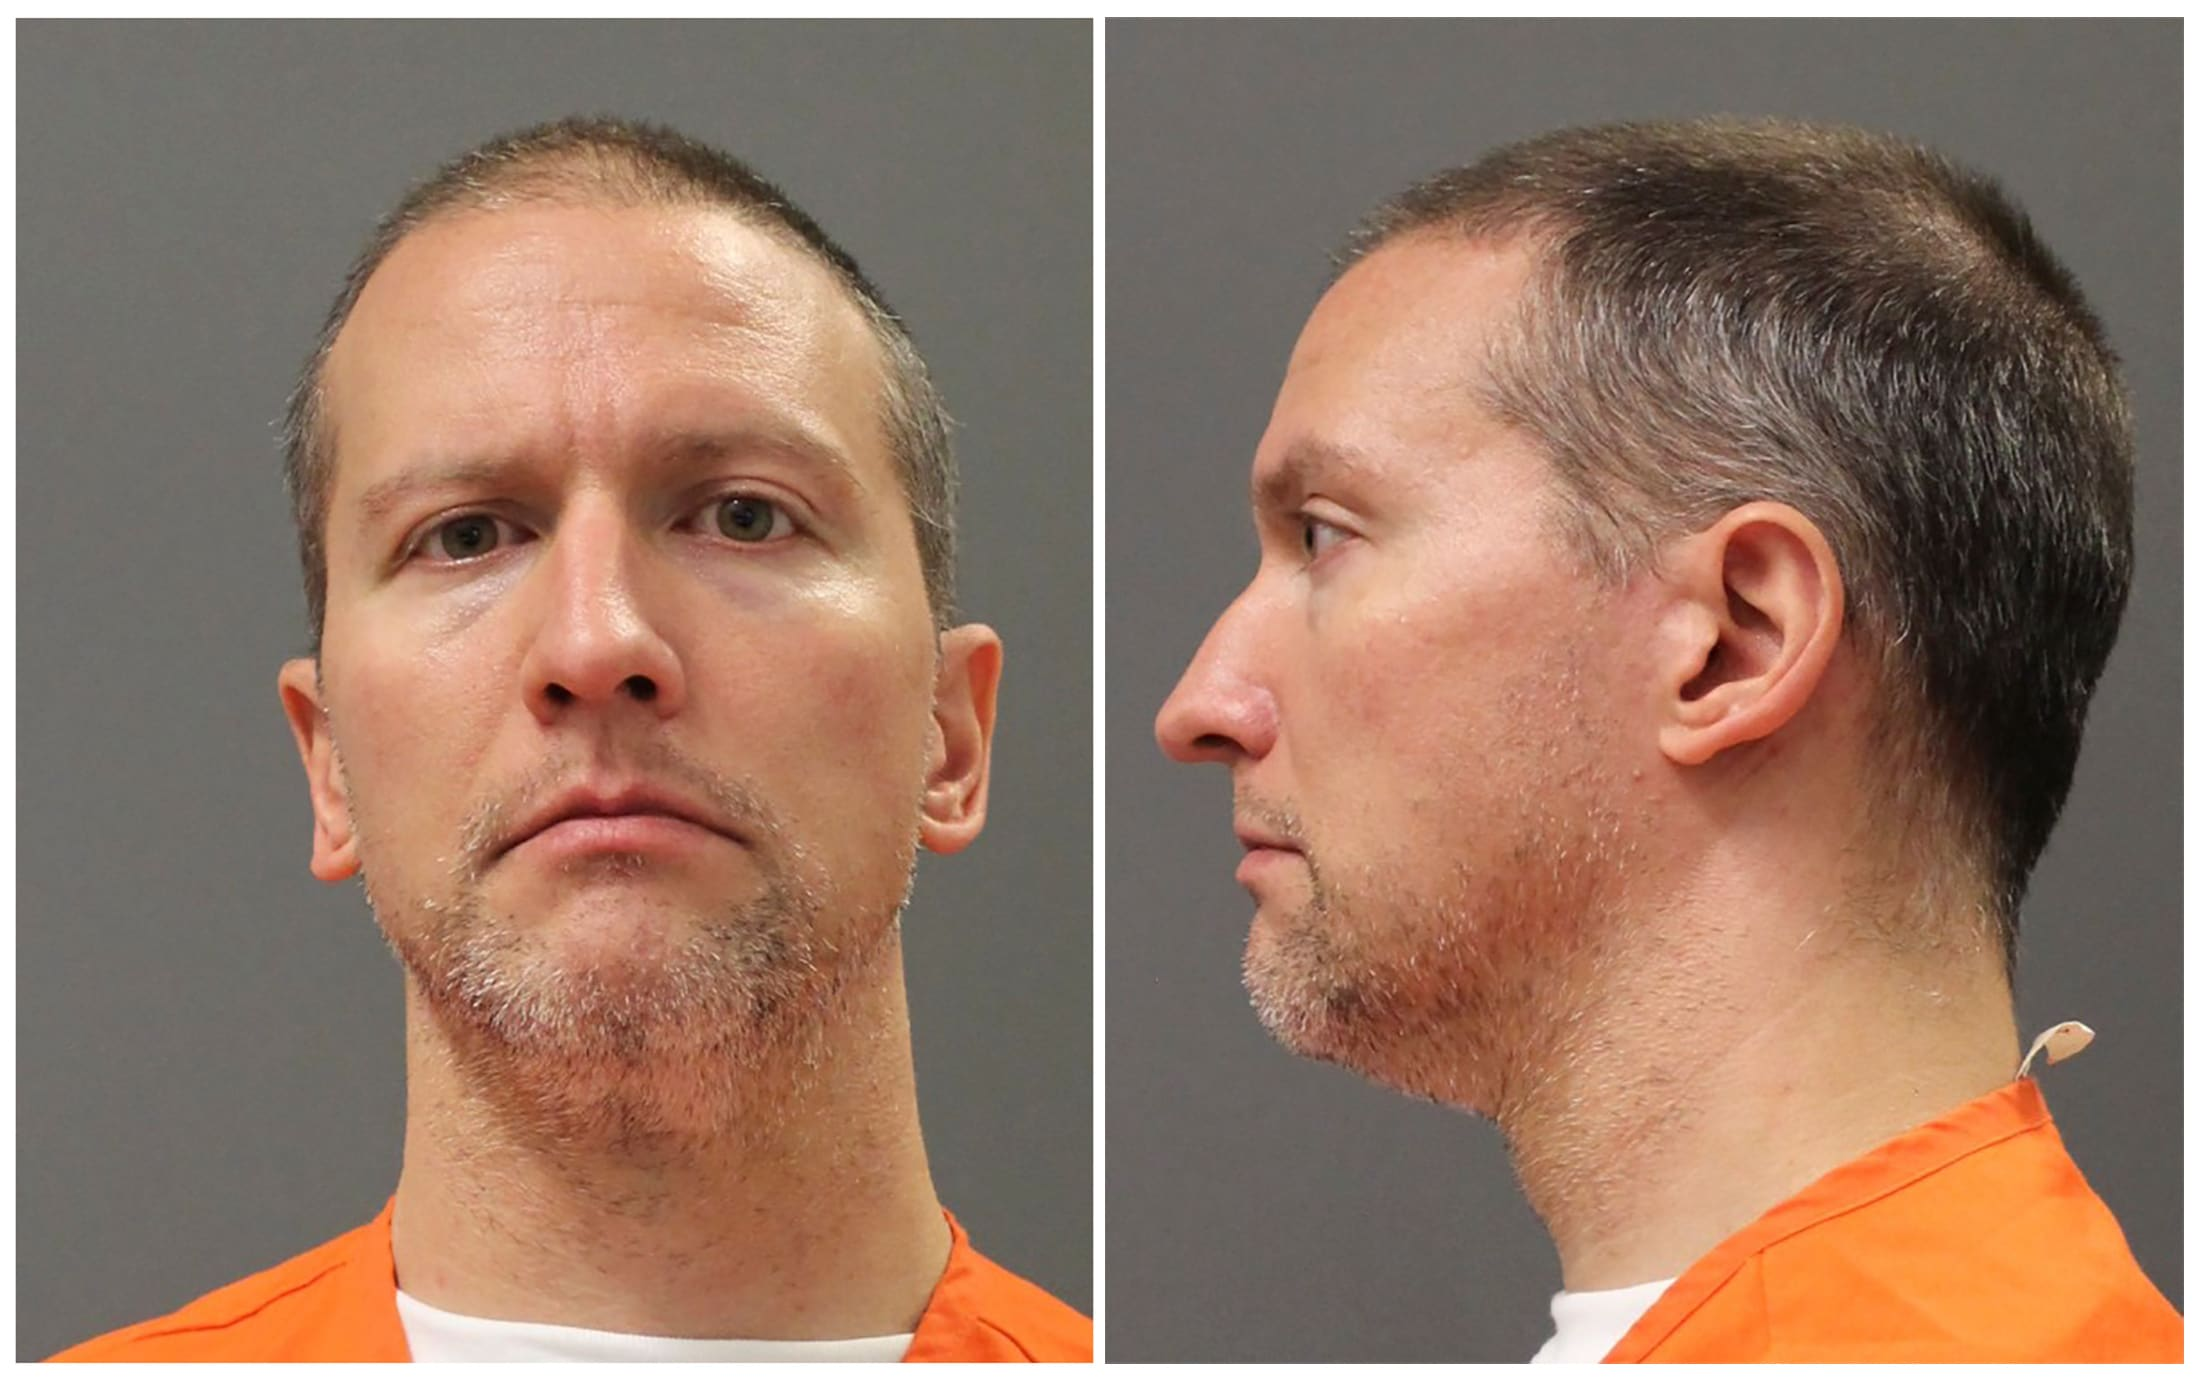 Bail set at $1.25 million for Derek Chauvin, ex-Minneapolis officer charged in George Floyd's death